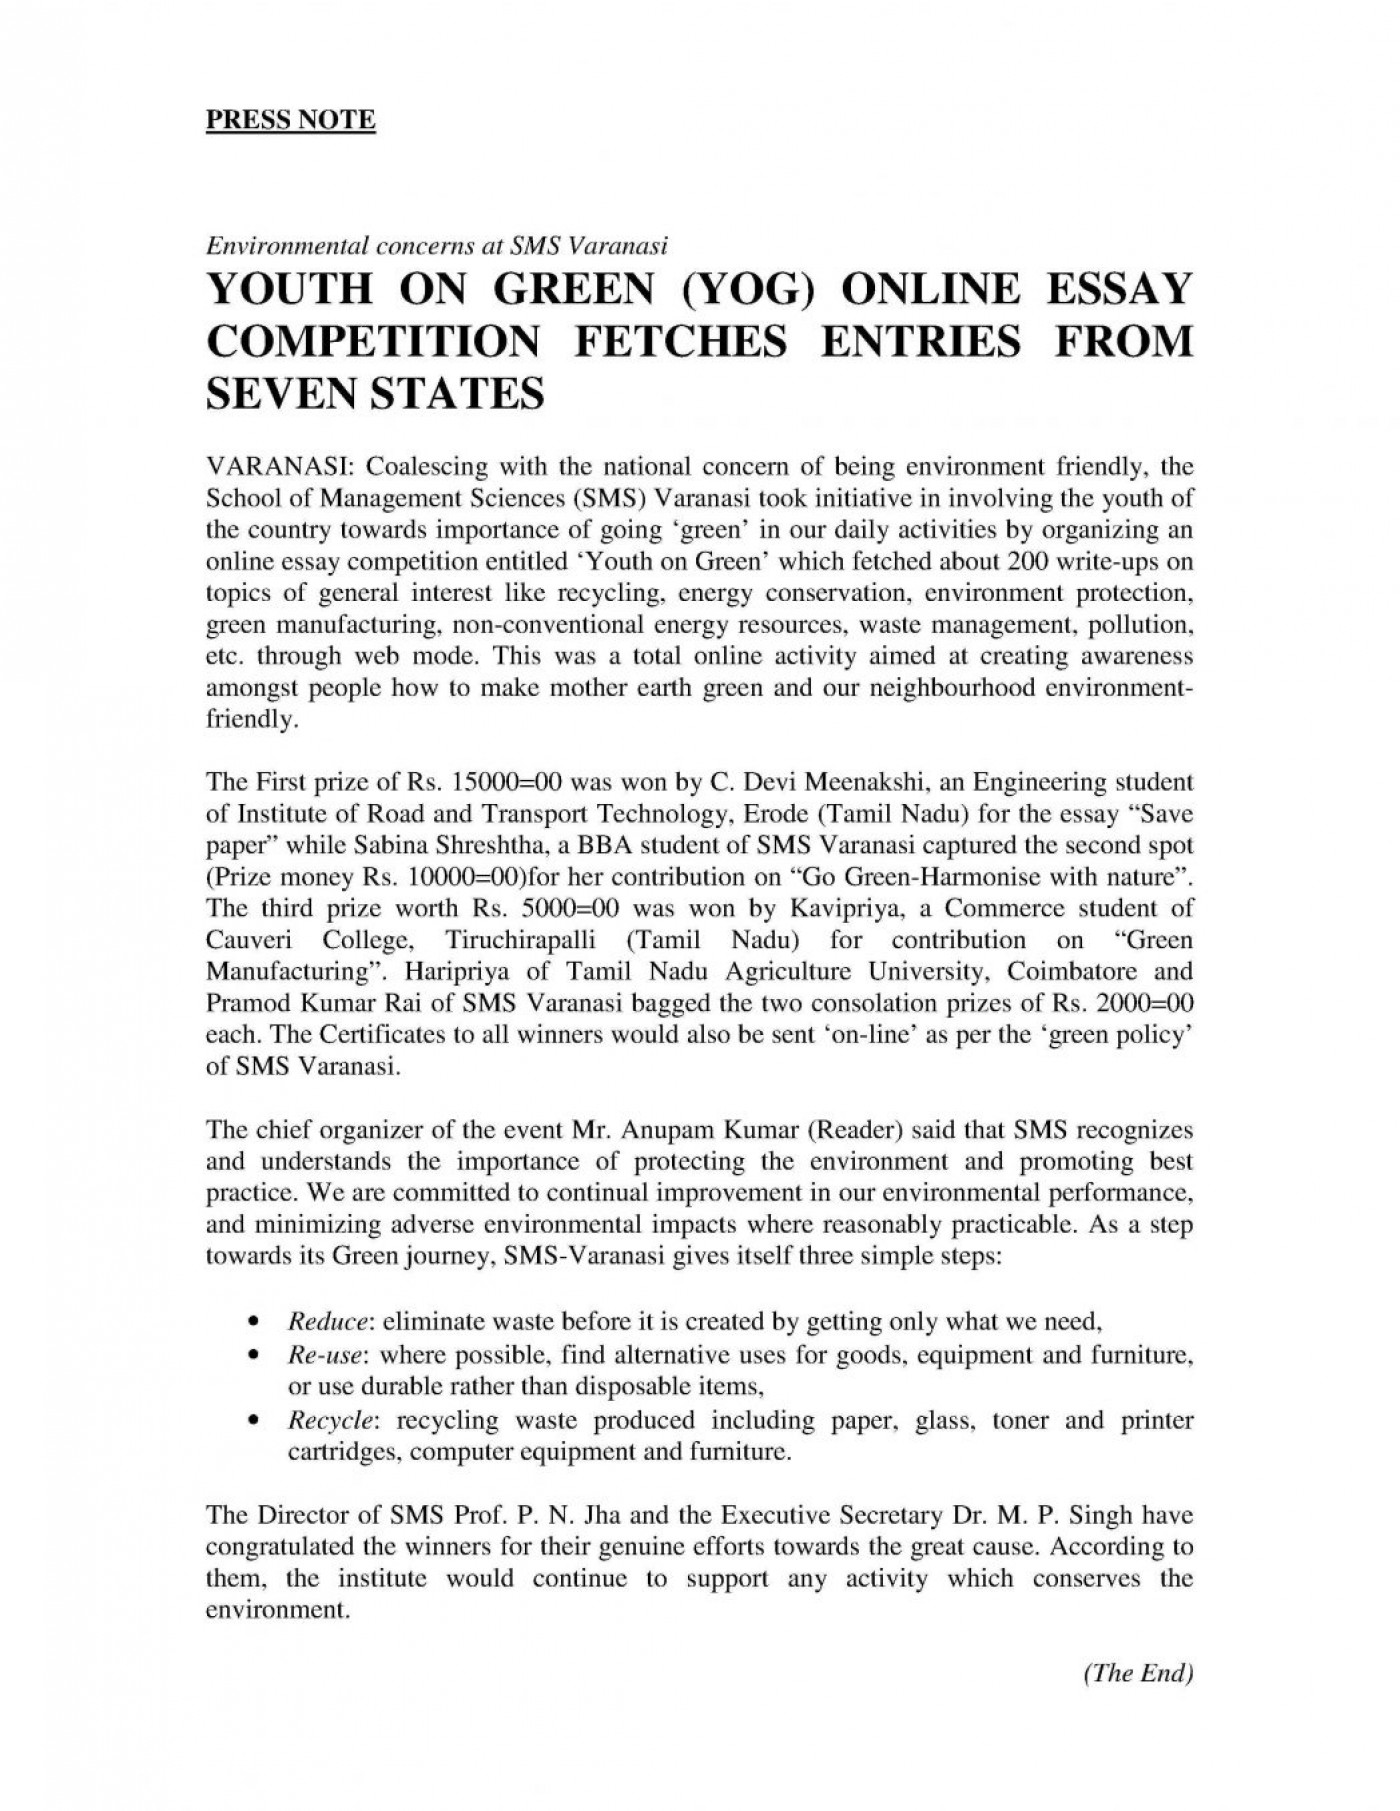 020 Best Essays For College Essay On Good Habits How Tot Application Online Yog Press Re About Yourself Examples Your Background Failure Prompt Off Hook 1048x1356 Example Amazing To Start An Can I A Book Observation With Quote 1400